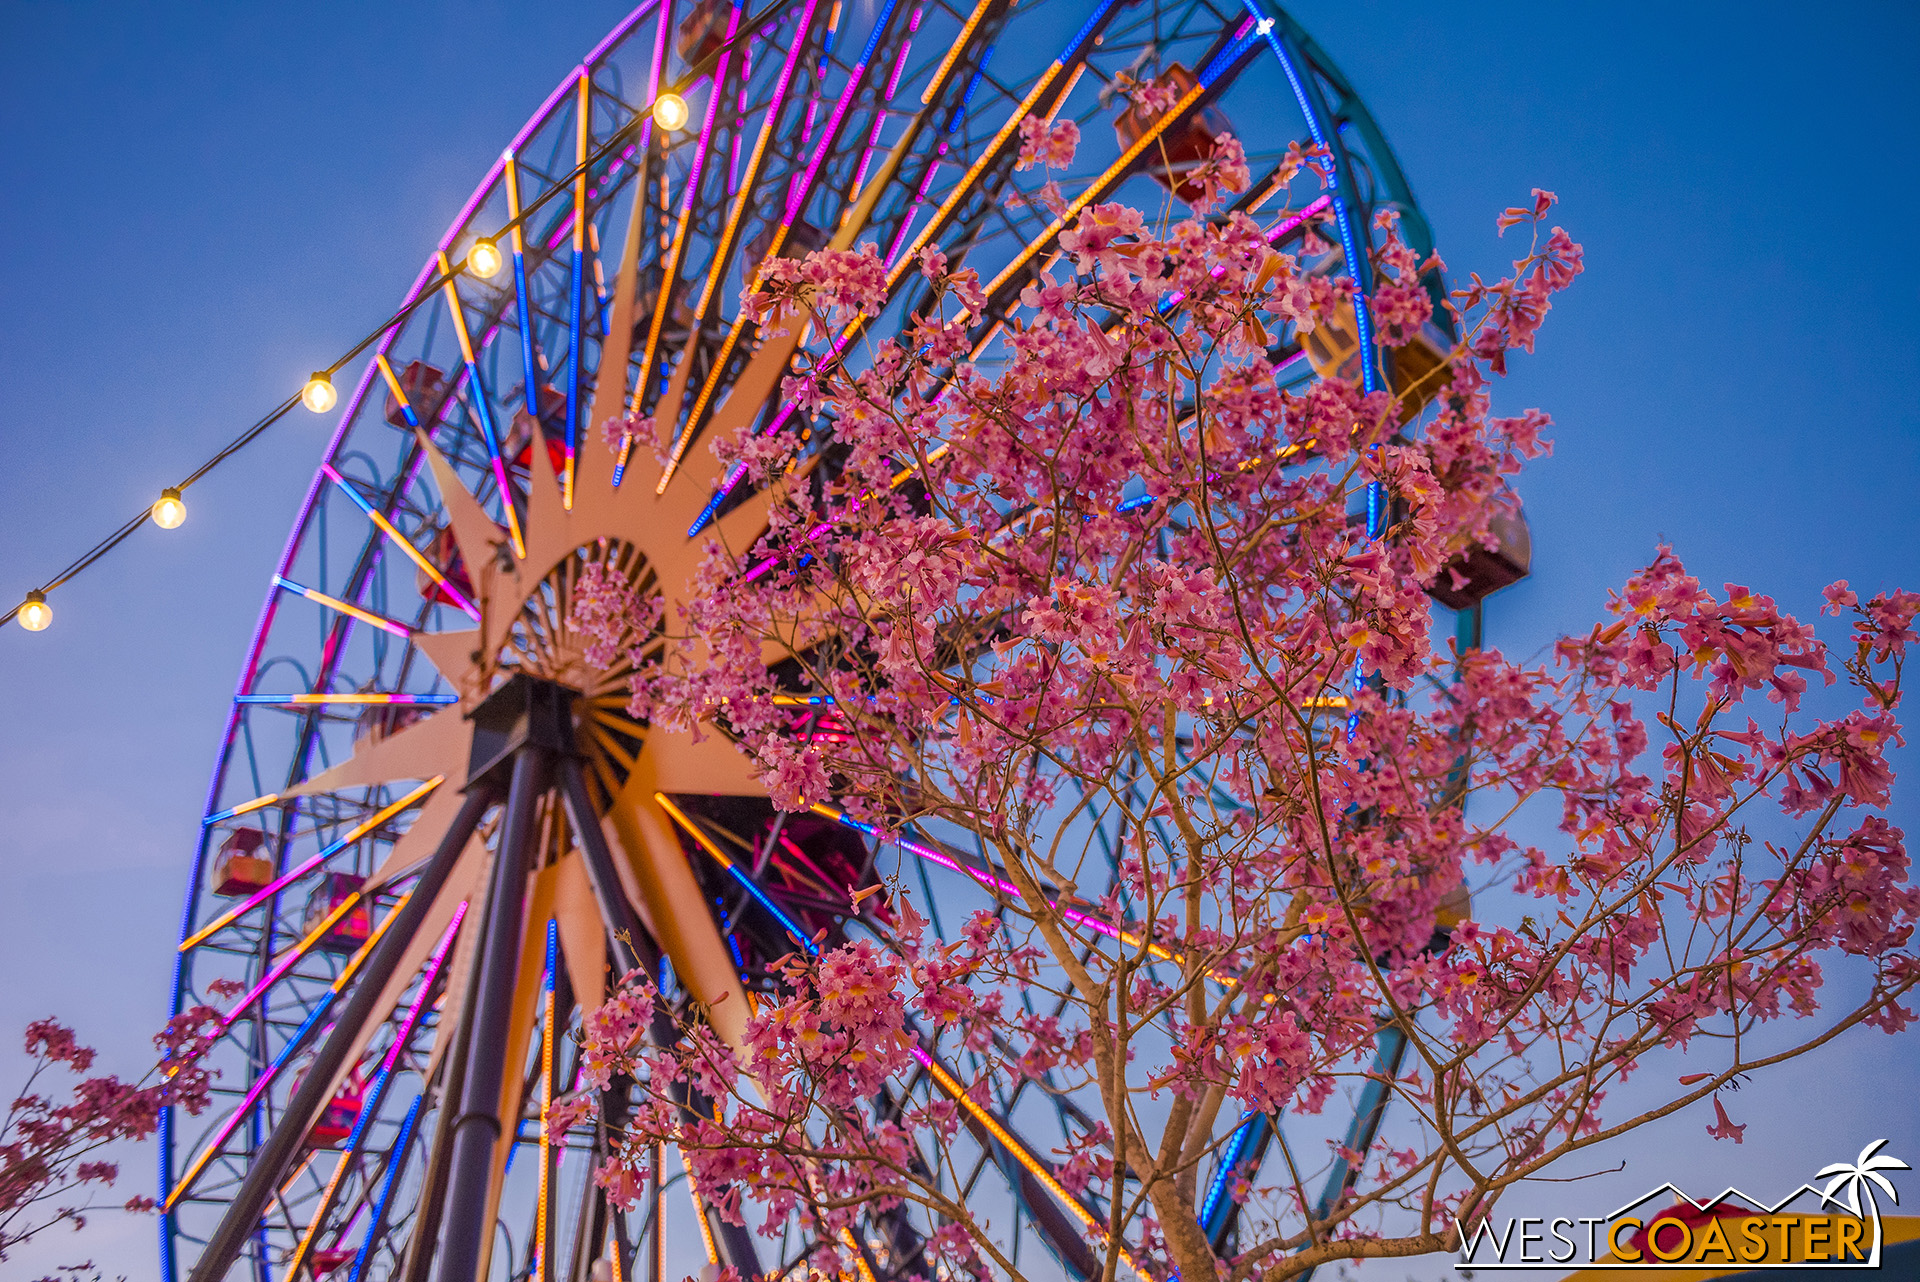 I think a lot of people conjure up Main Street's The Hub and Buena Vista Street as locations of Disney tabebuia trees, but Pixar Pier has them too!